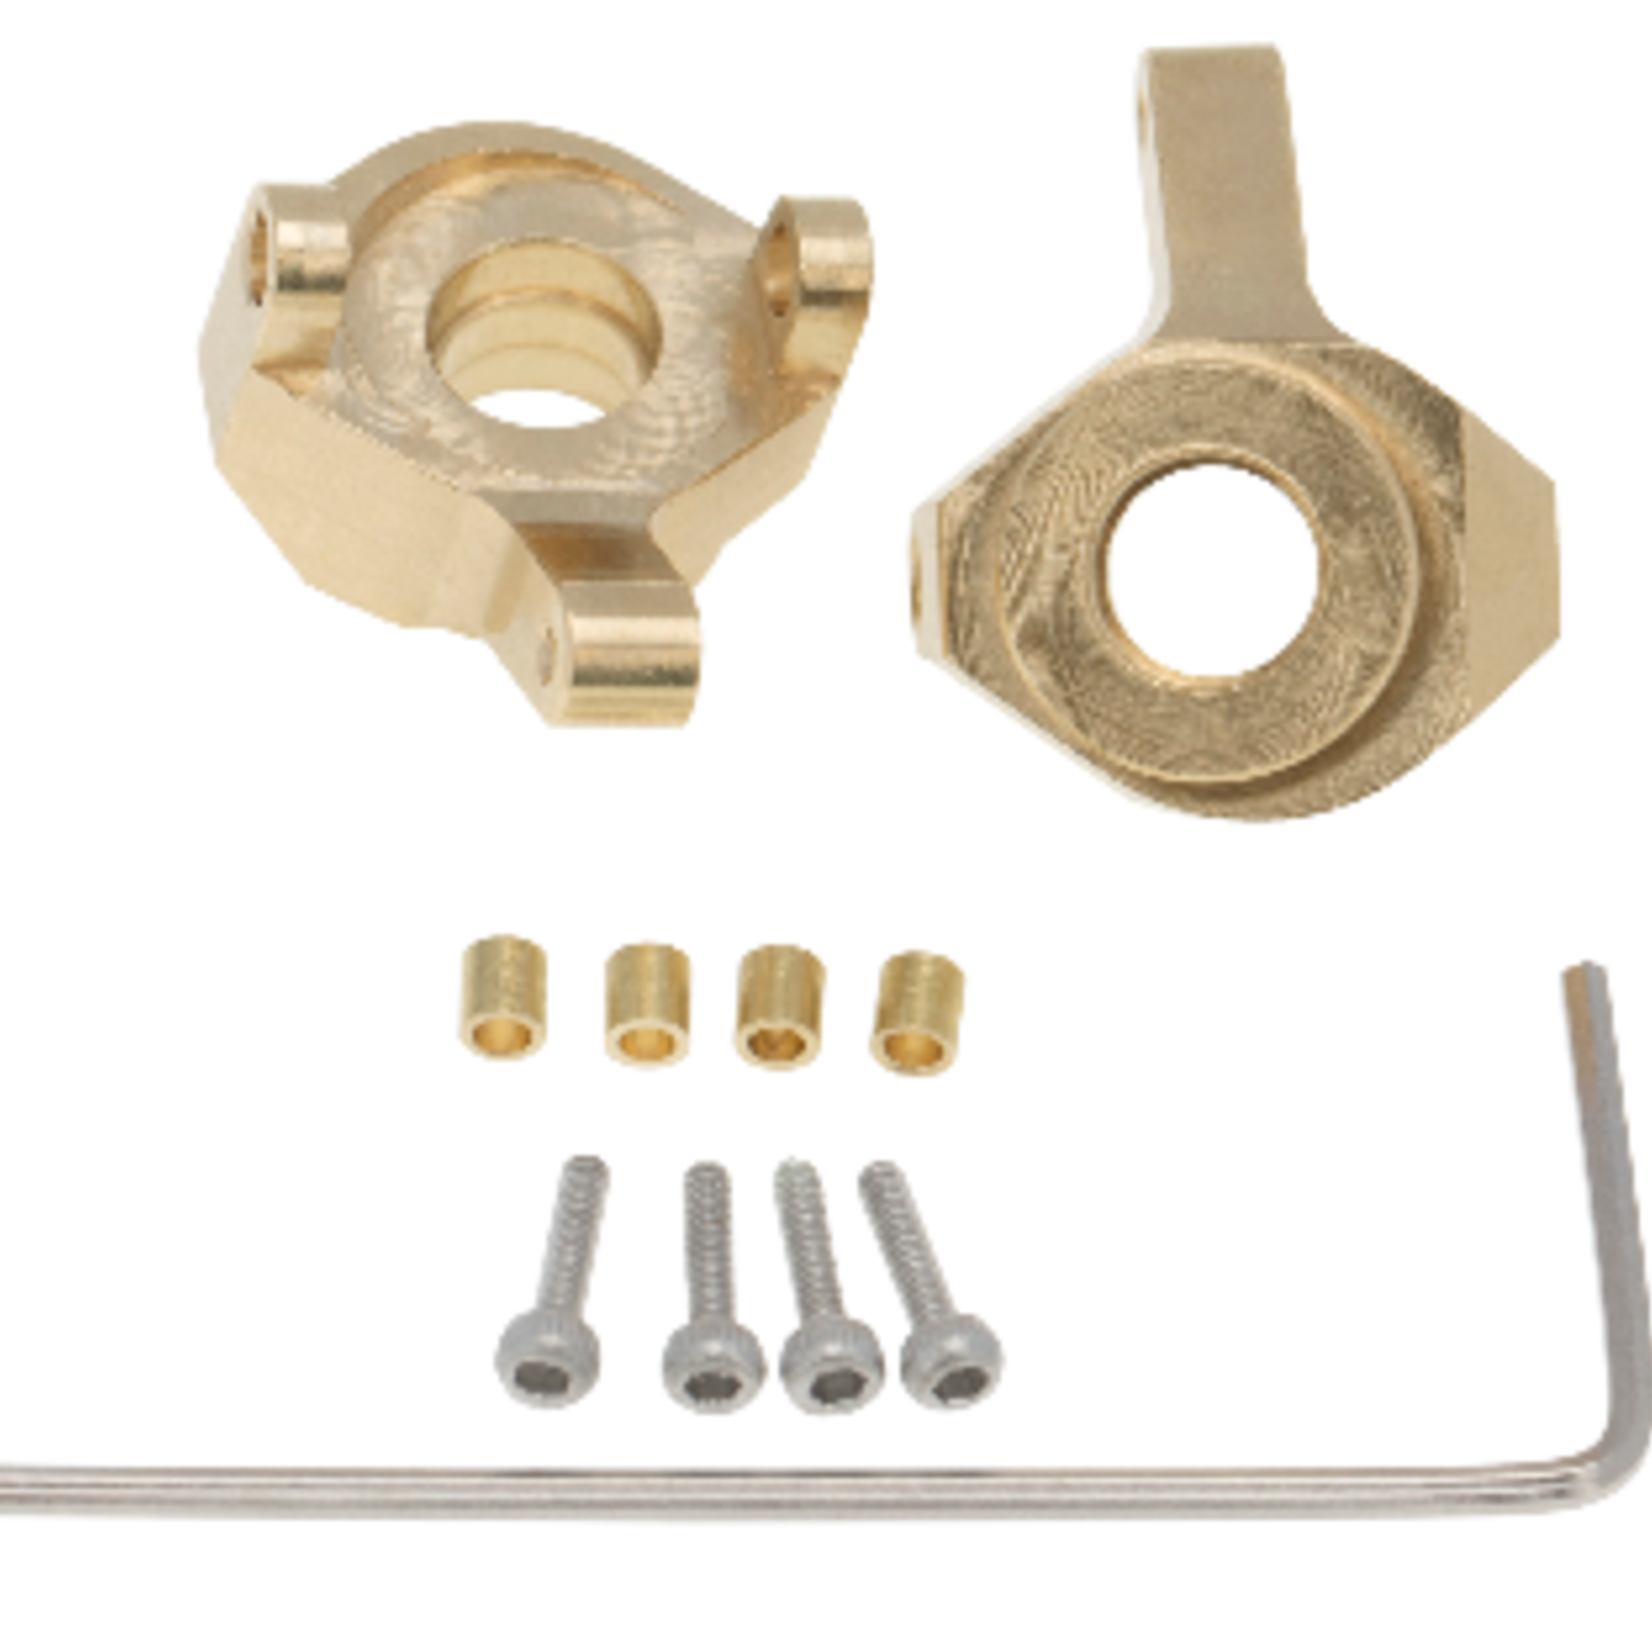 Hobby Details DTSCX24-1 Hobby Details Axial SCX24 Brass Counterweight Steering Cup 1 set 8 g